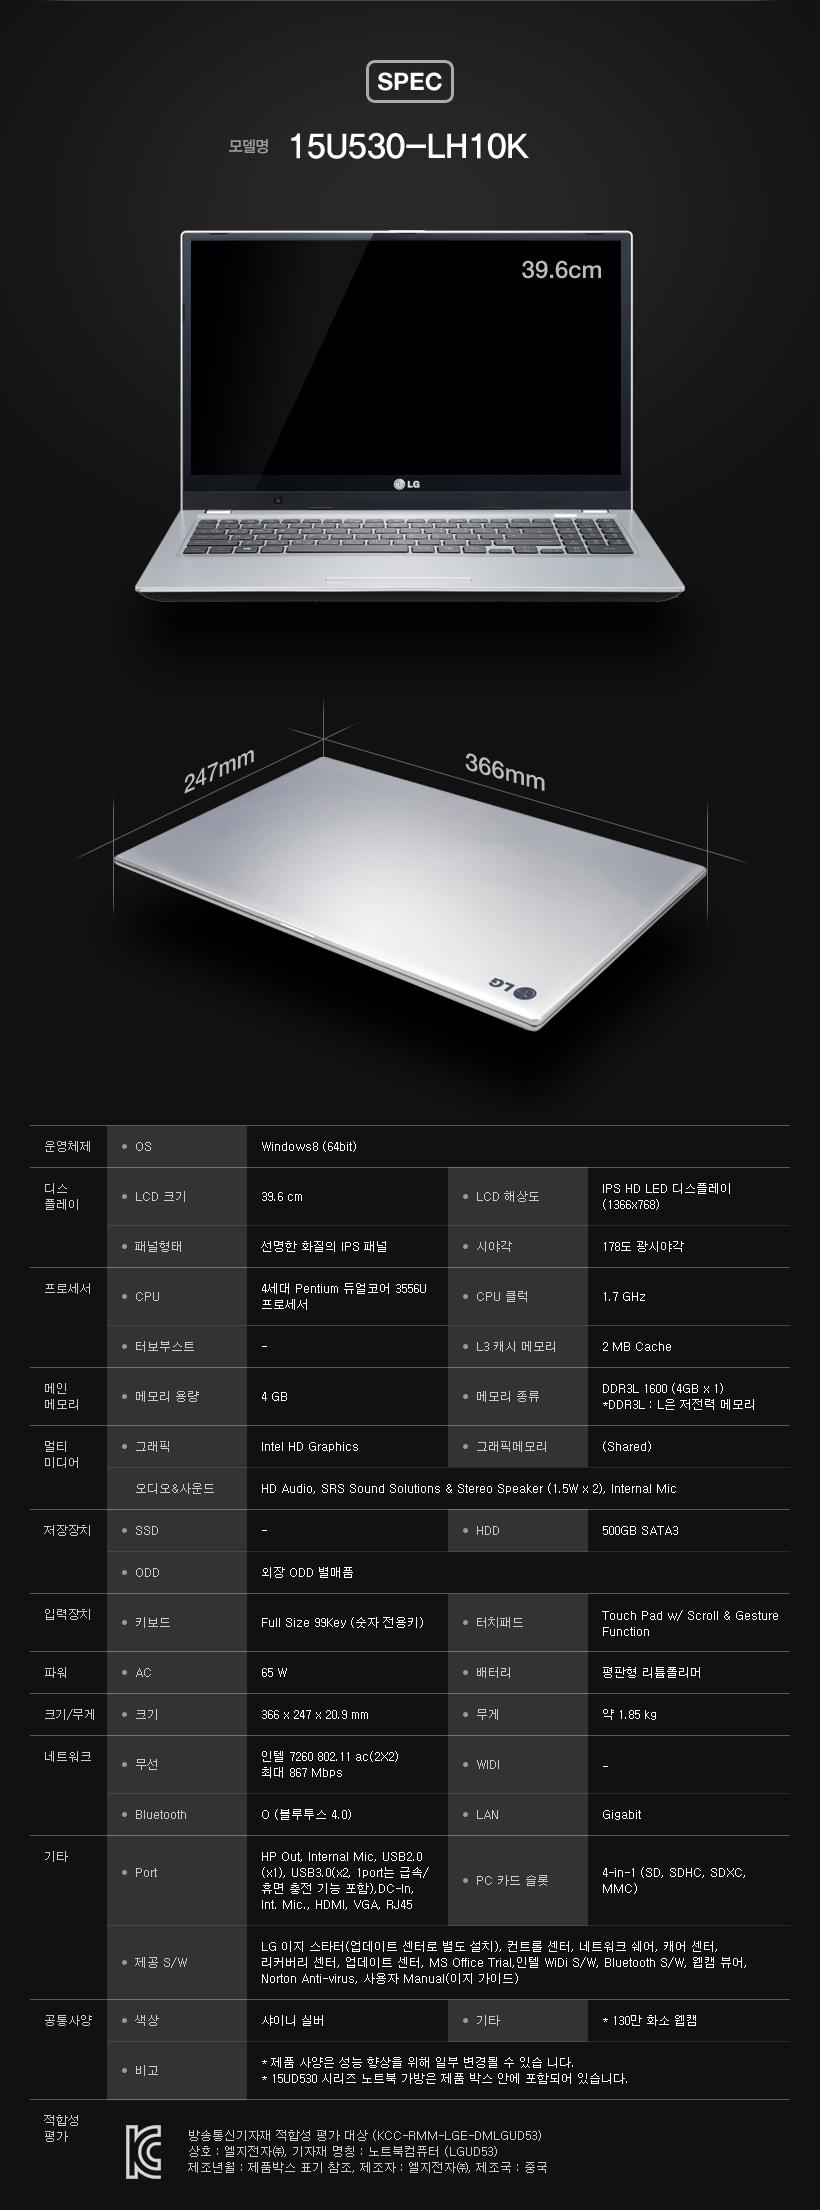 15u530 lh10k additionally Diy Moleskine Cahier Journal Gift 6 as well match1 additionally Msi Gt 80 Notebook Gaming Tastiera Meccanica further Producto Detalle rapido Id 446 Titulo  p notebook 14. on the notebook